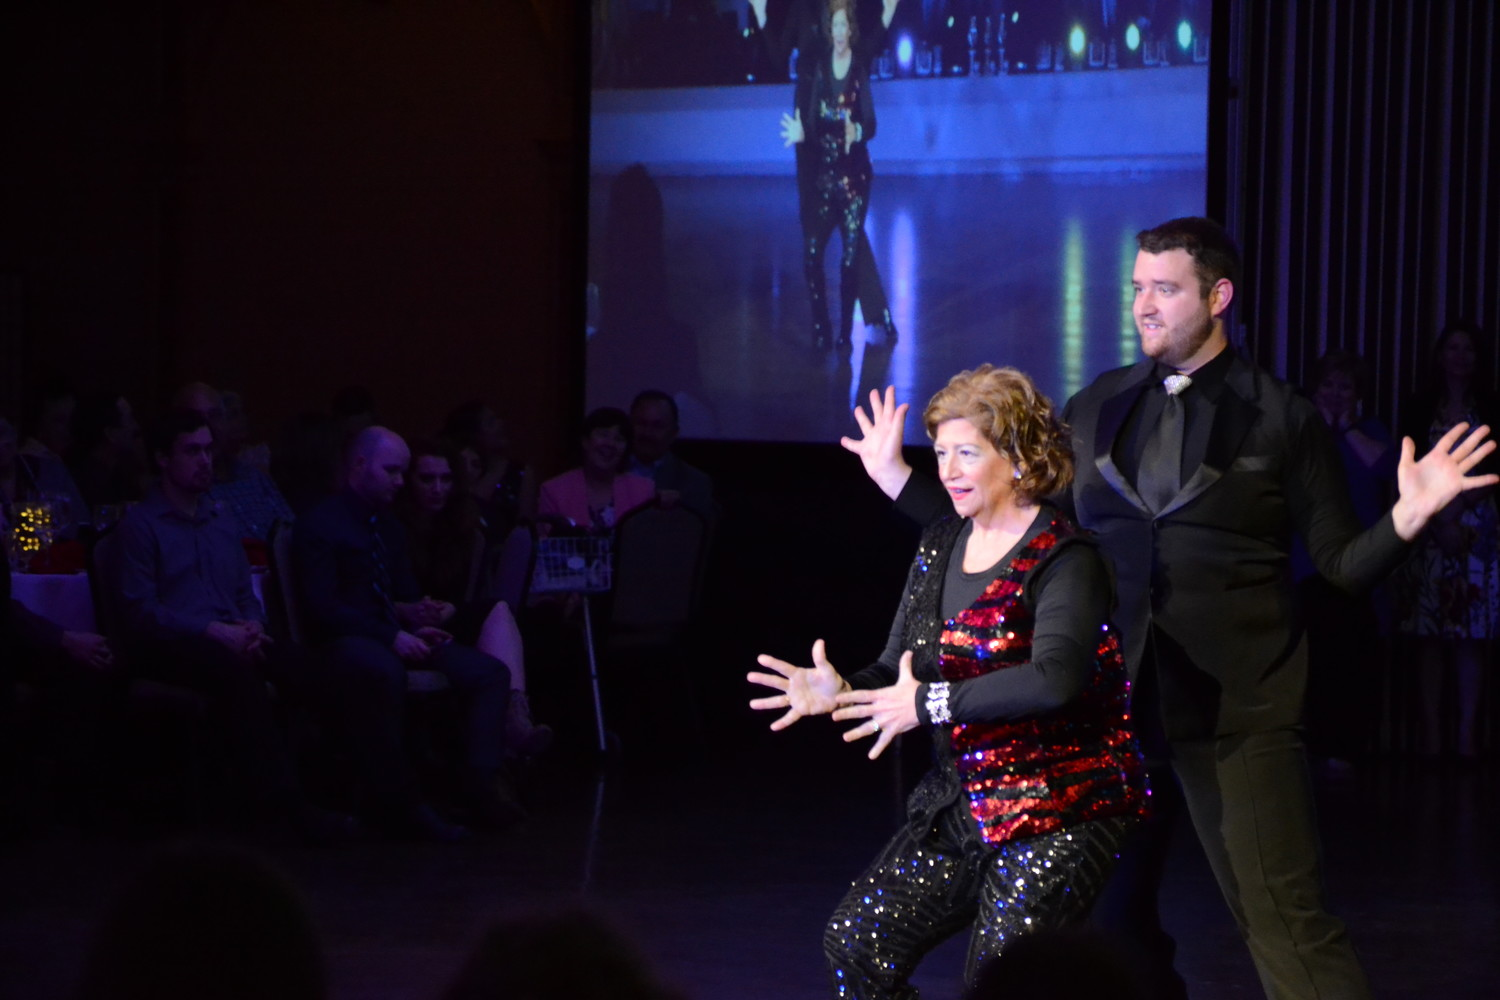 Linda Warren of Bank of America and Noah Carsten made good use of jazz hands during their performance, which rounded out the evening of dances.